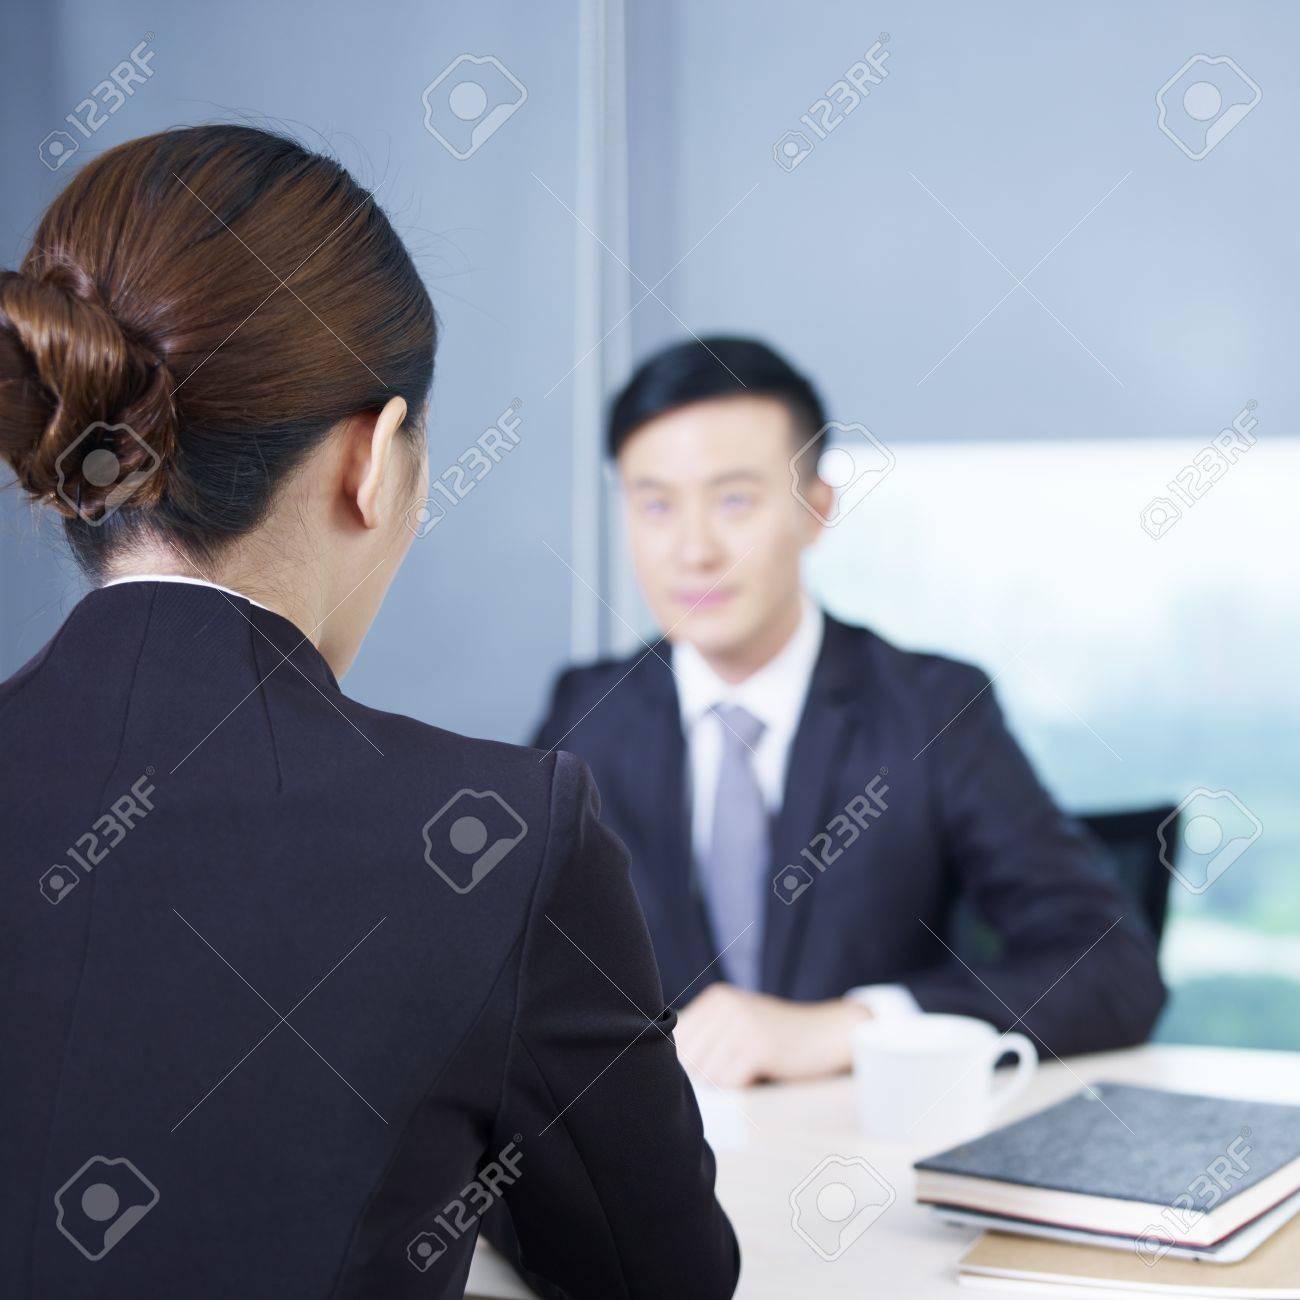 rear view of an interviewer talking to a nervous interviewee stock stock photo rear view of an interviewer talking to a nervous interviewee